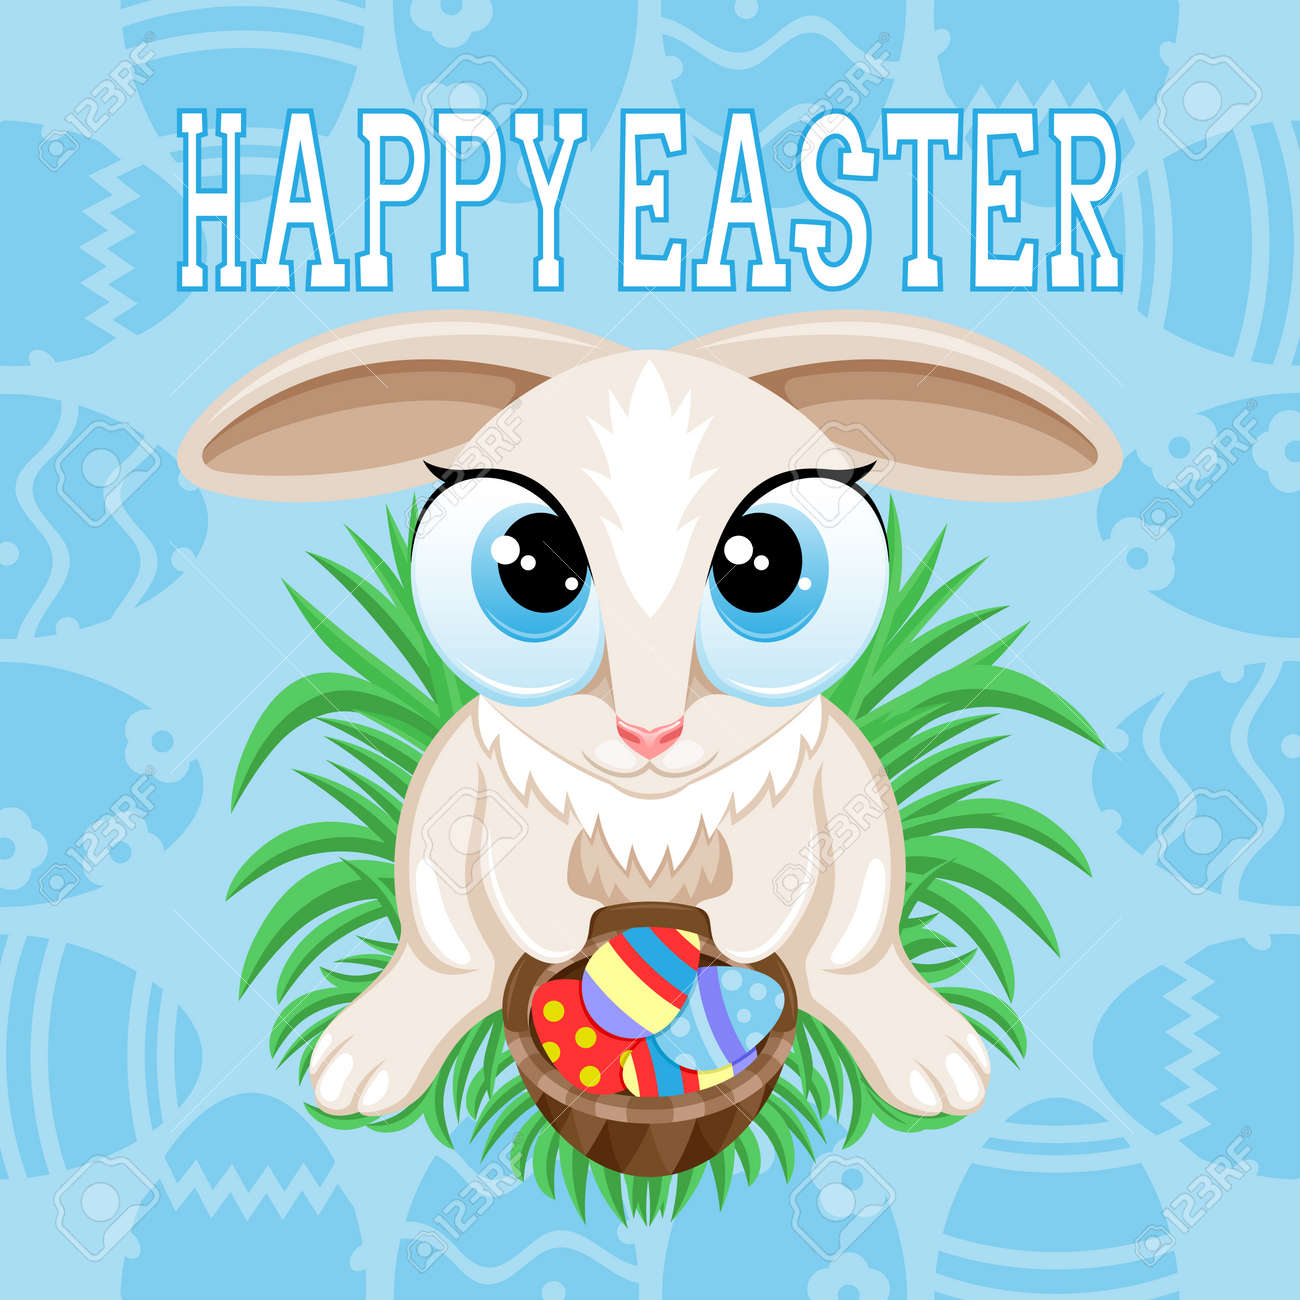 Illustration for Happy Easter with Easter bunny on blue background. - 168969135